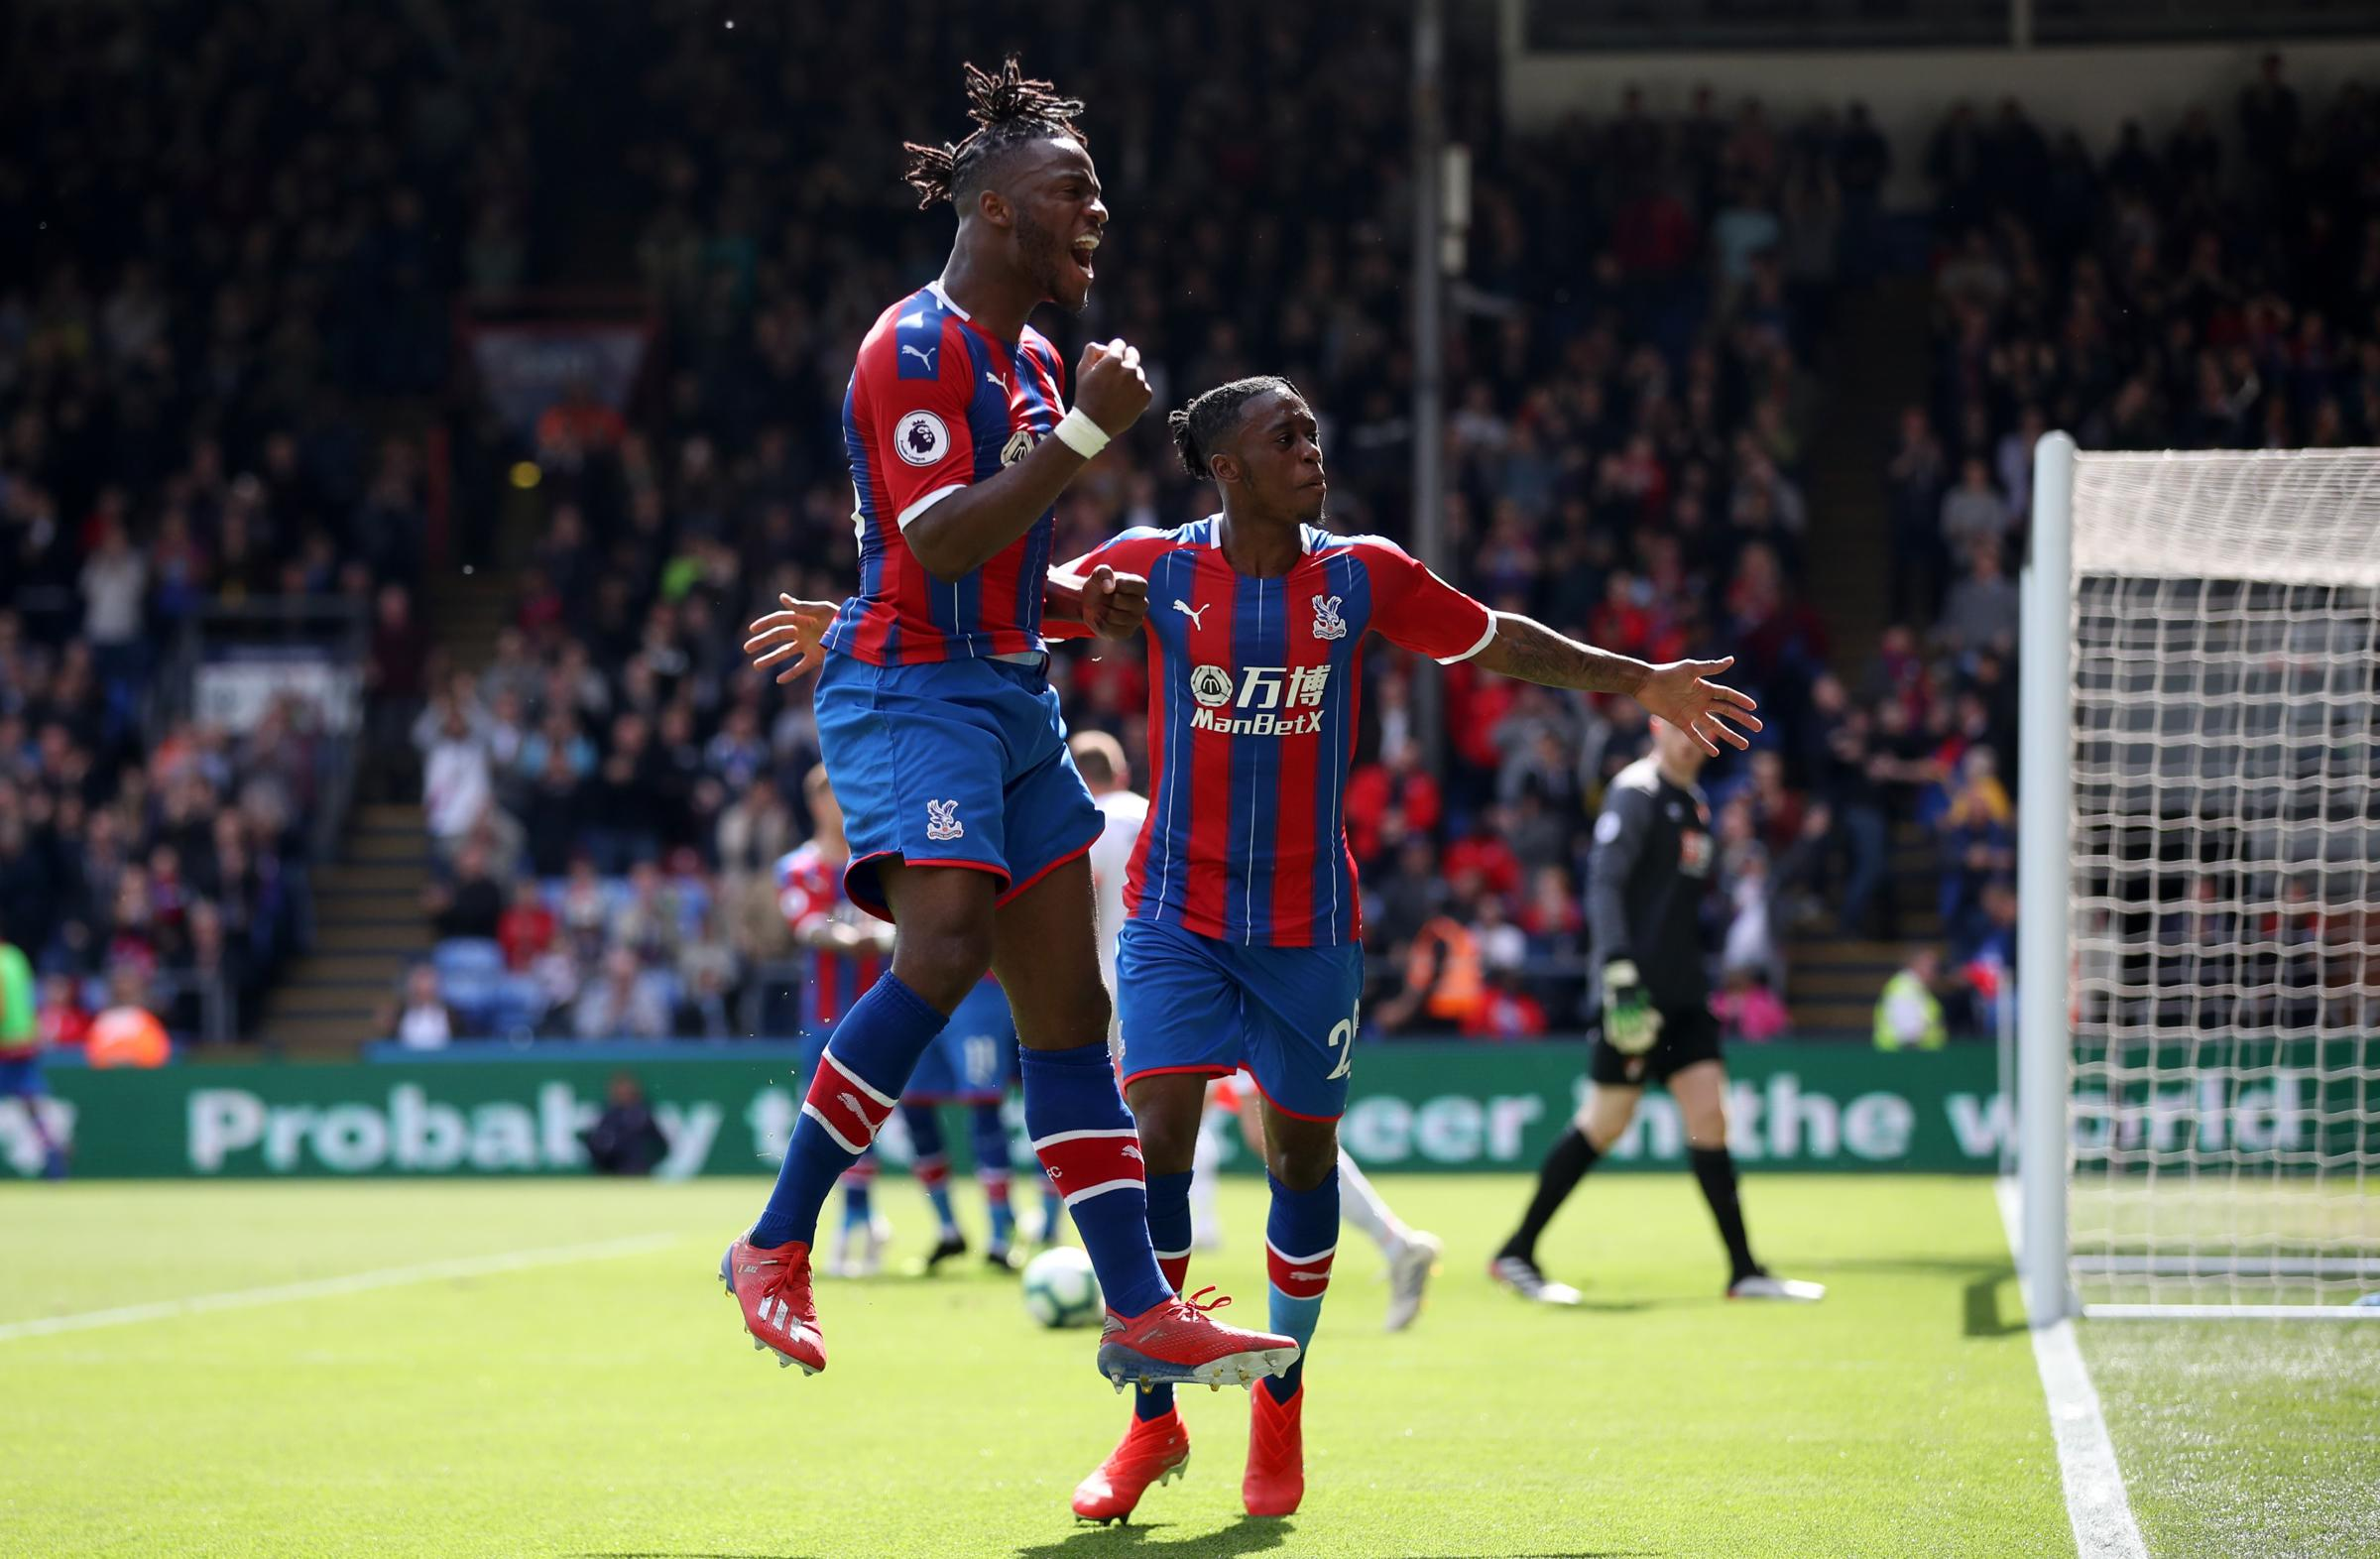 Crystal Palace's Michy Batshuayi celebrates with team mate Aaron Wan-Bissaka after he scores to put his side 2-0 up during the Premier League match at Selhurst Park, London.